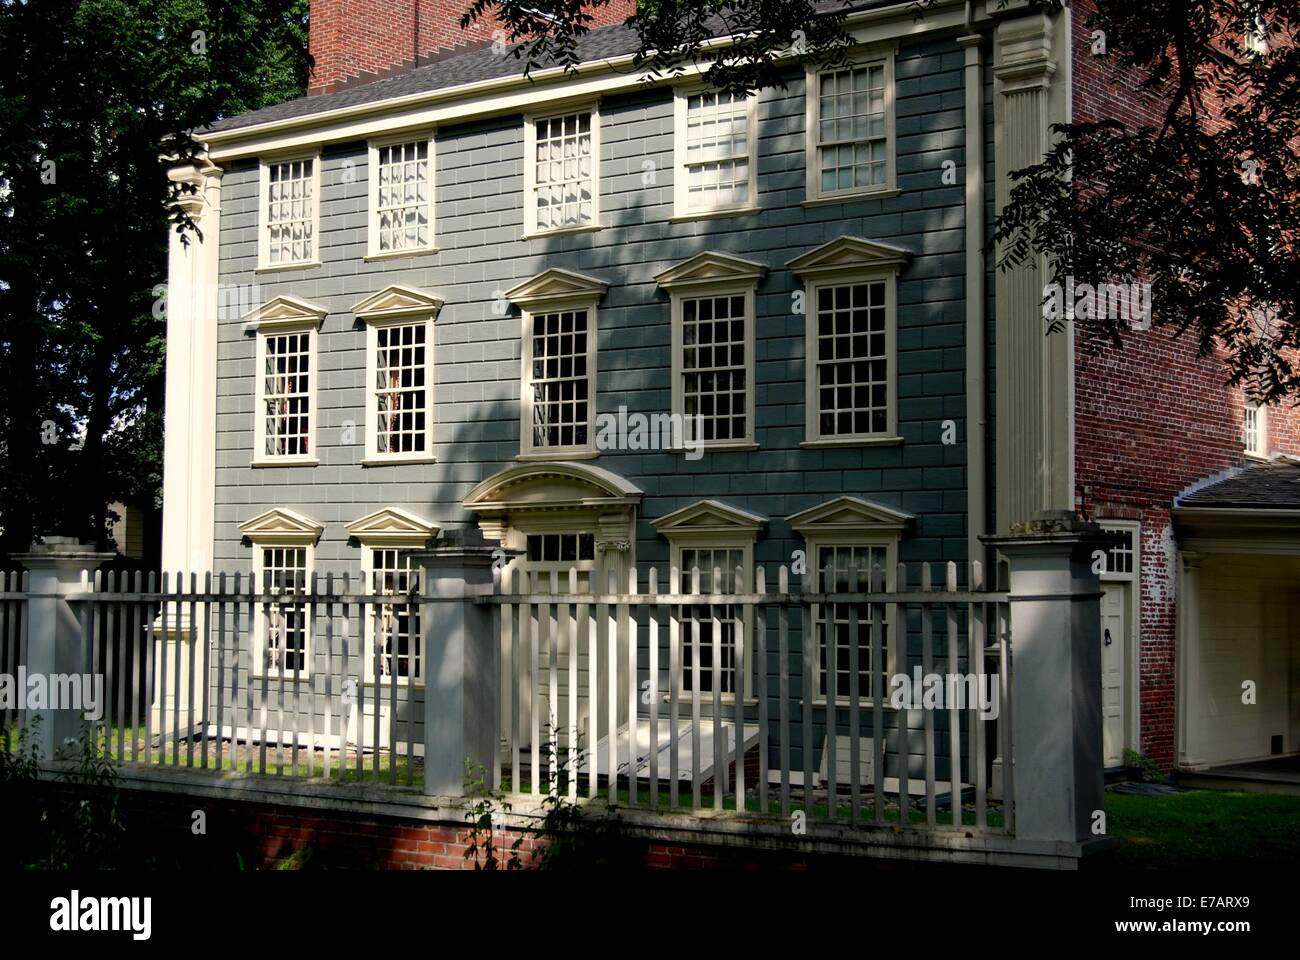 MEDFORD,  MASSACHUSETTS: The historic three-story 18th century Georgian style Isaac Royall House - Stock Image